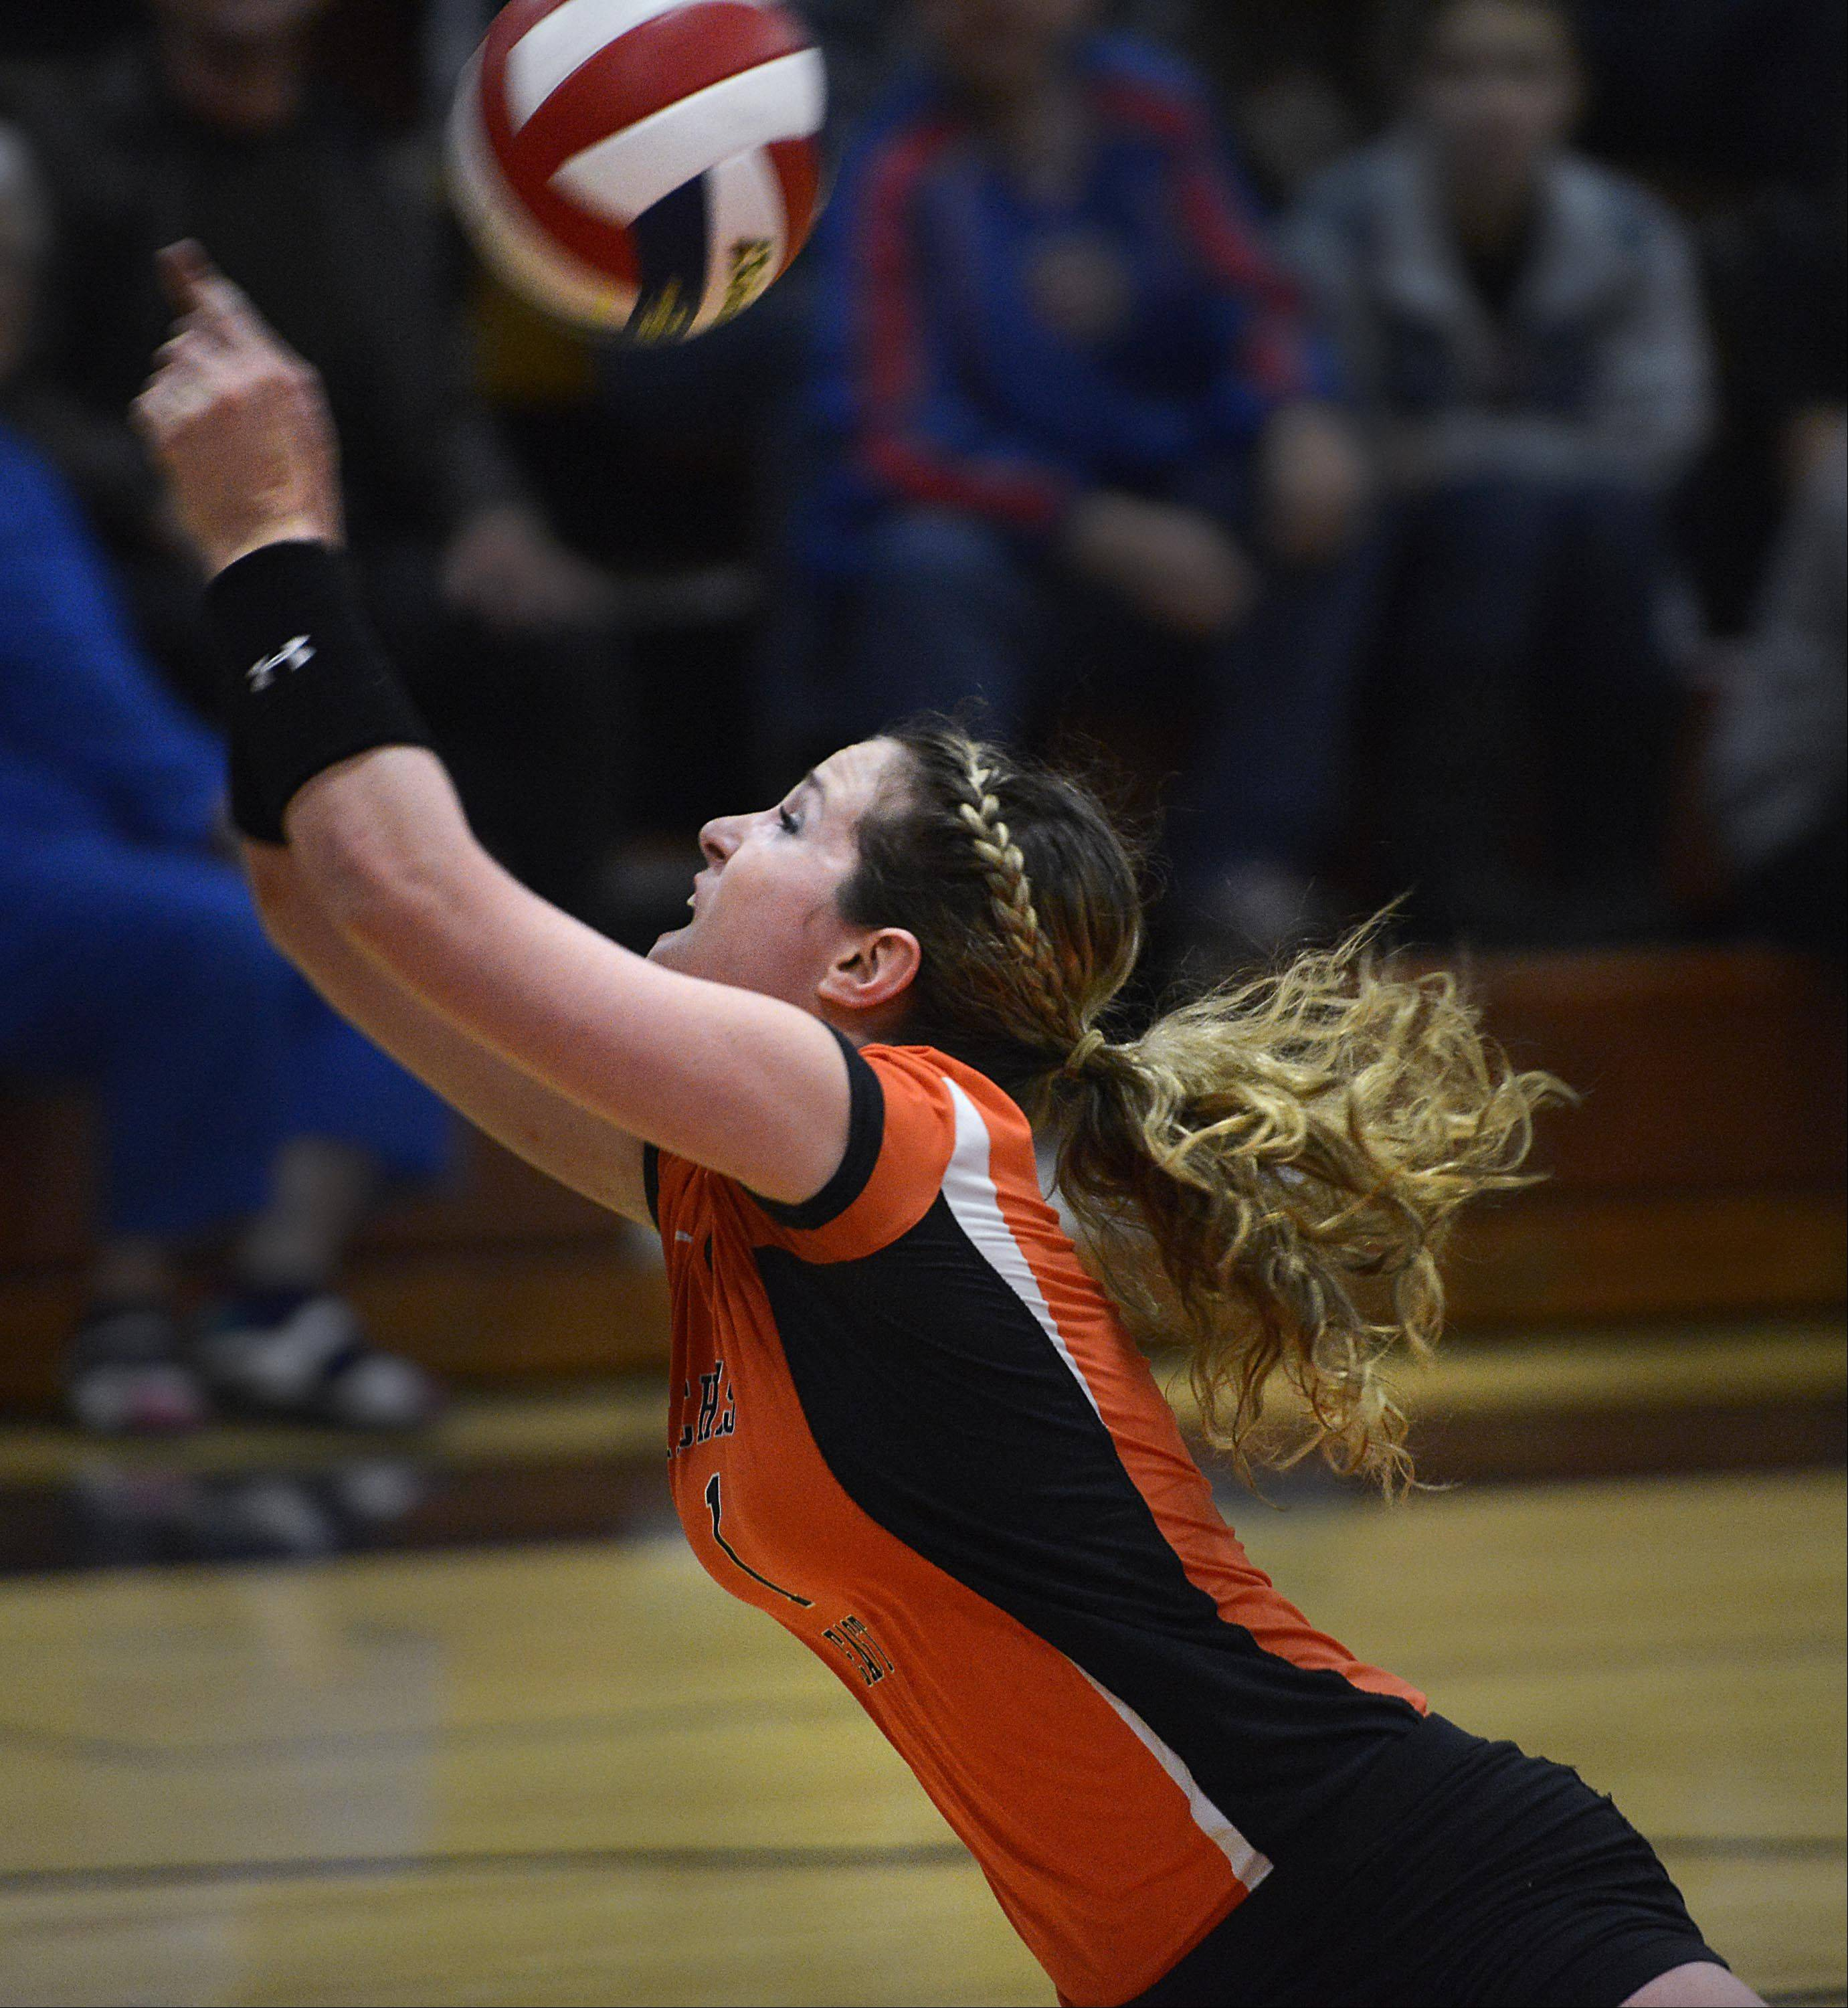 St. Charles East's Anne Hughes runs away from the net to reach a deflected shot by Geneva Tuesday in St. Charles.